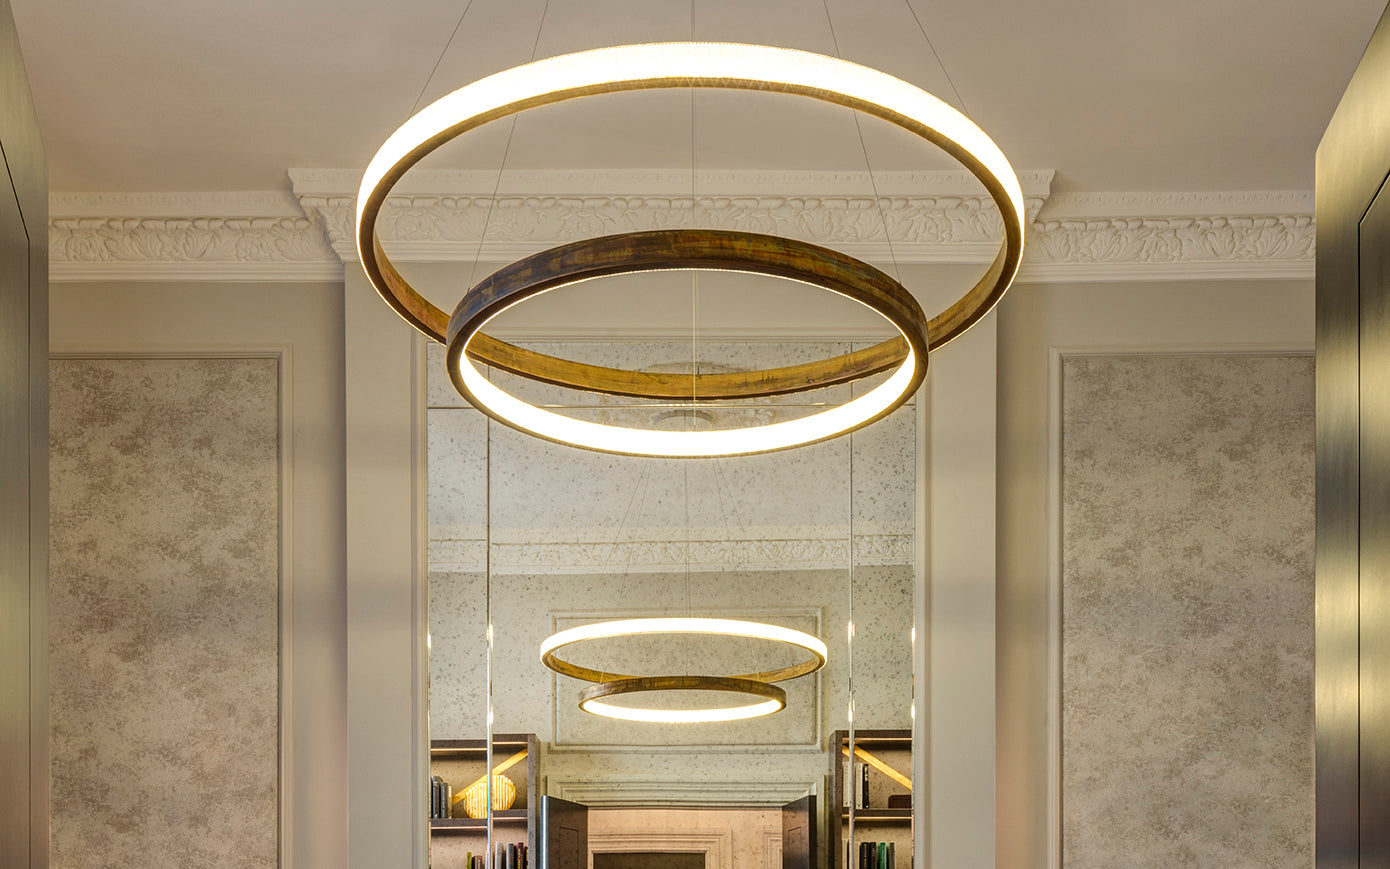 Lathy By Cameron Design House, Chandelier Lighting Design Inspiration,  London Design